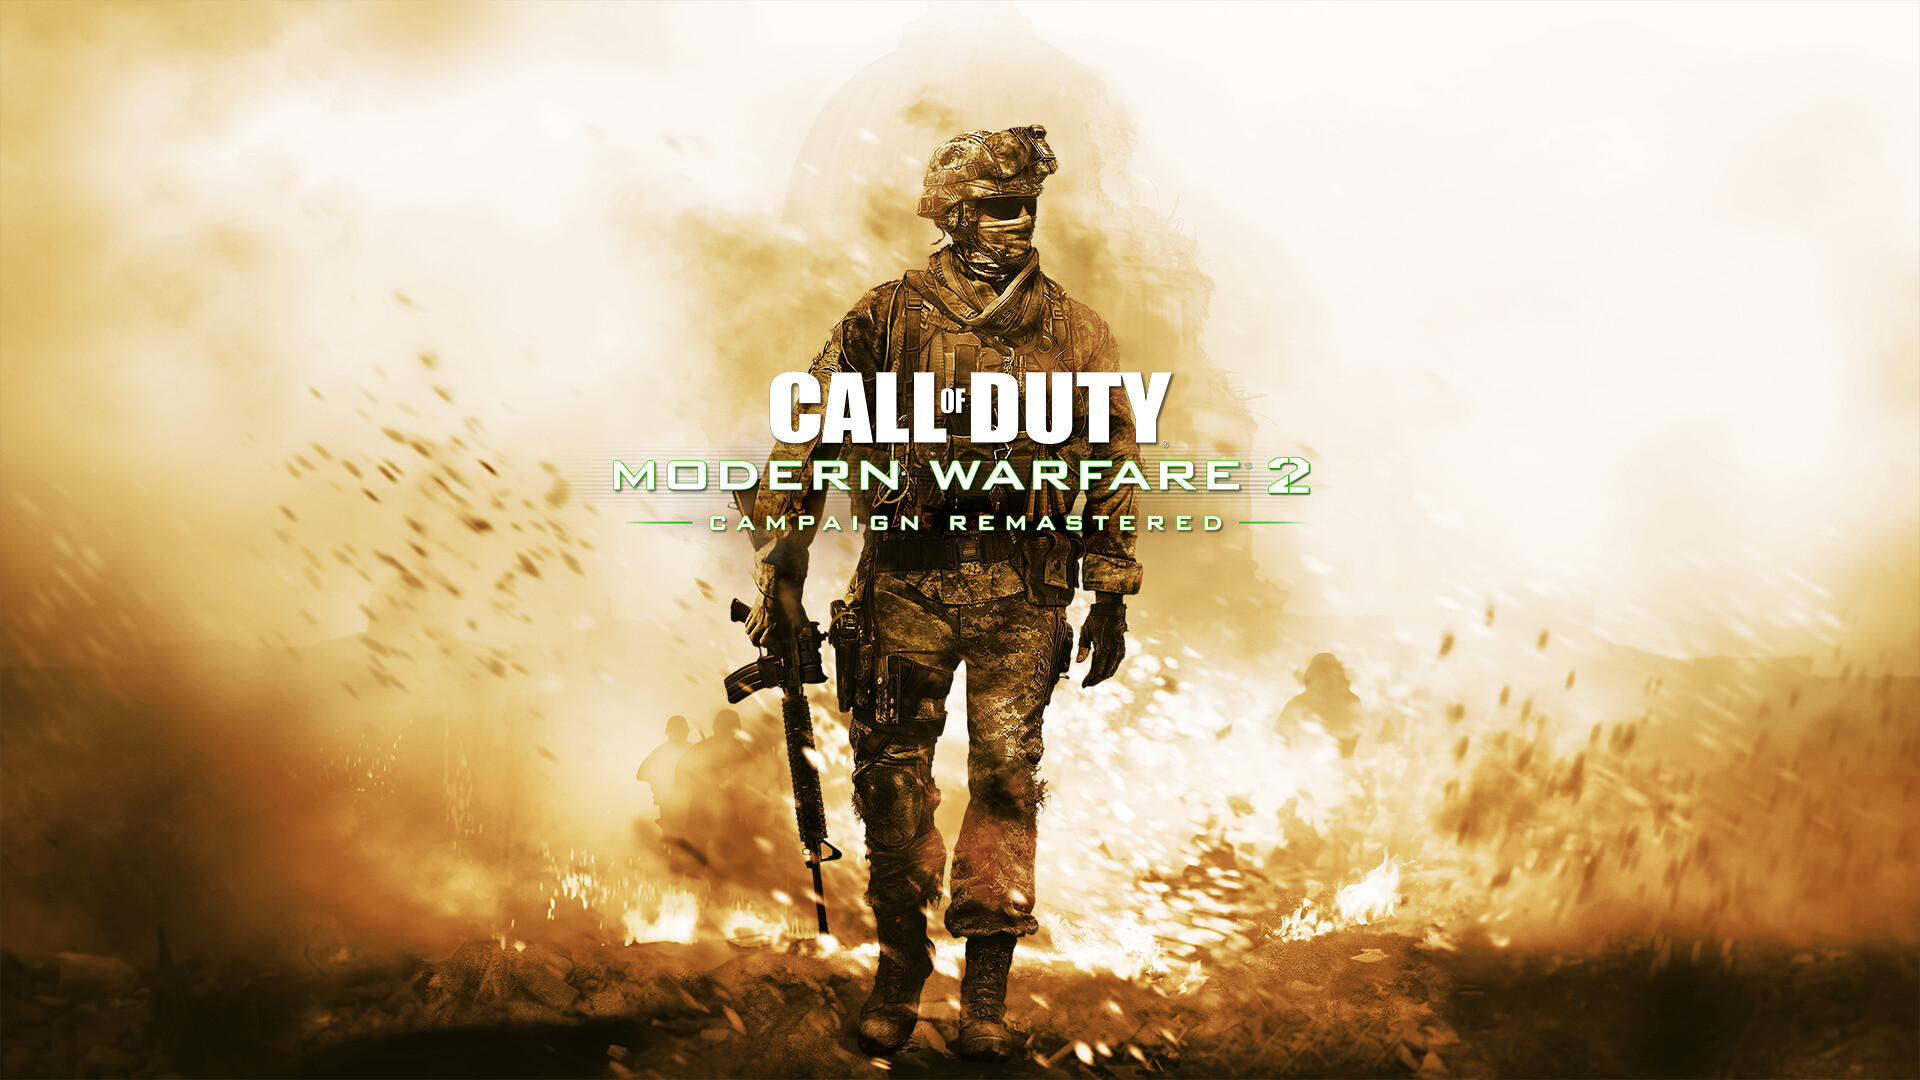 Call Of Duty Modern Warfare 2 Campaign Remastered Available Today